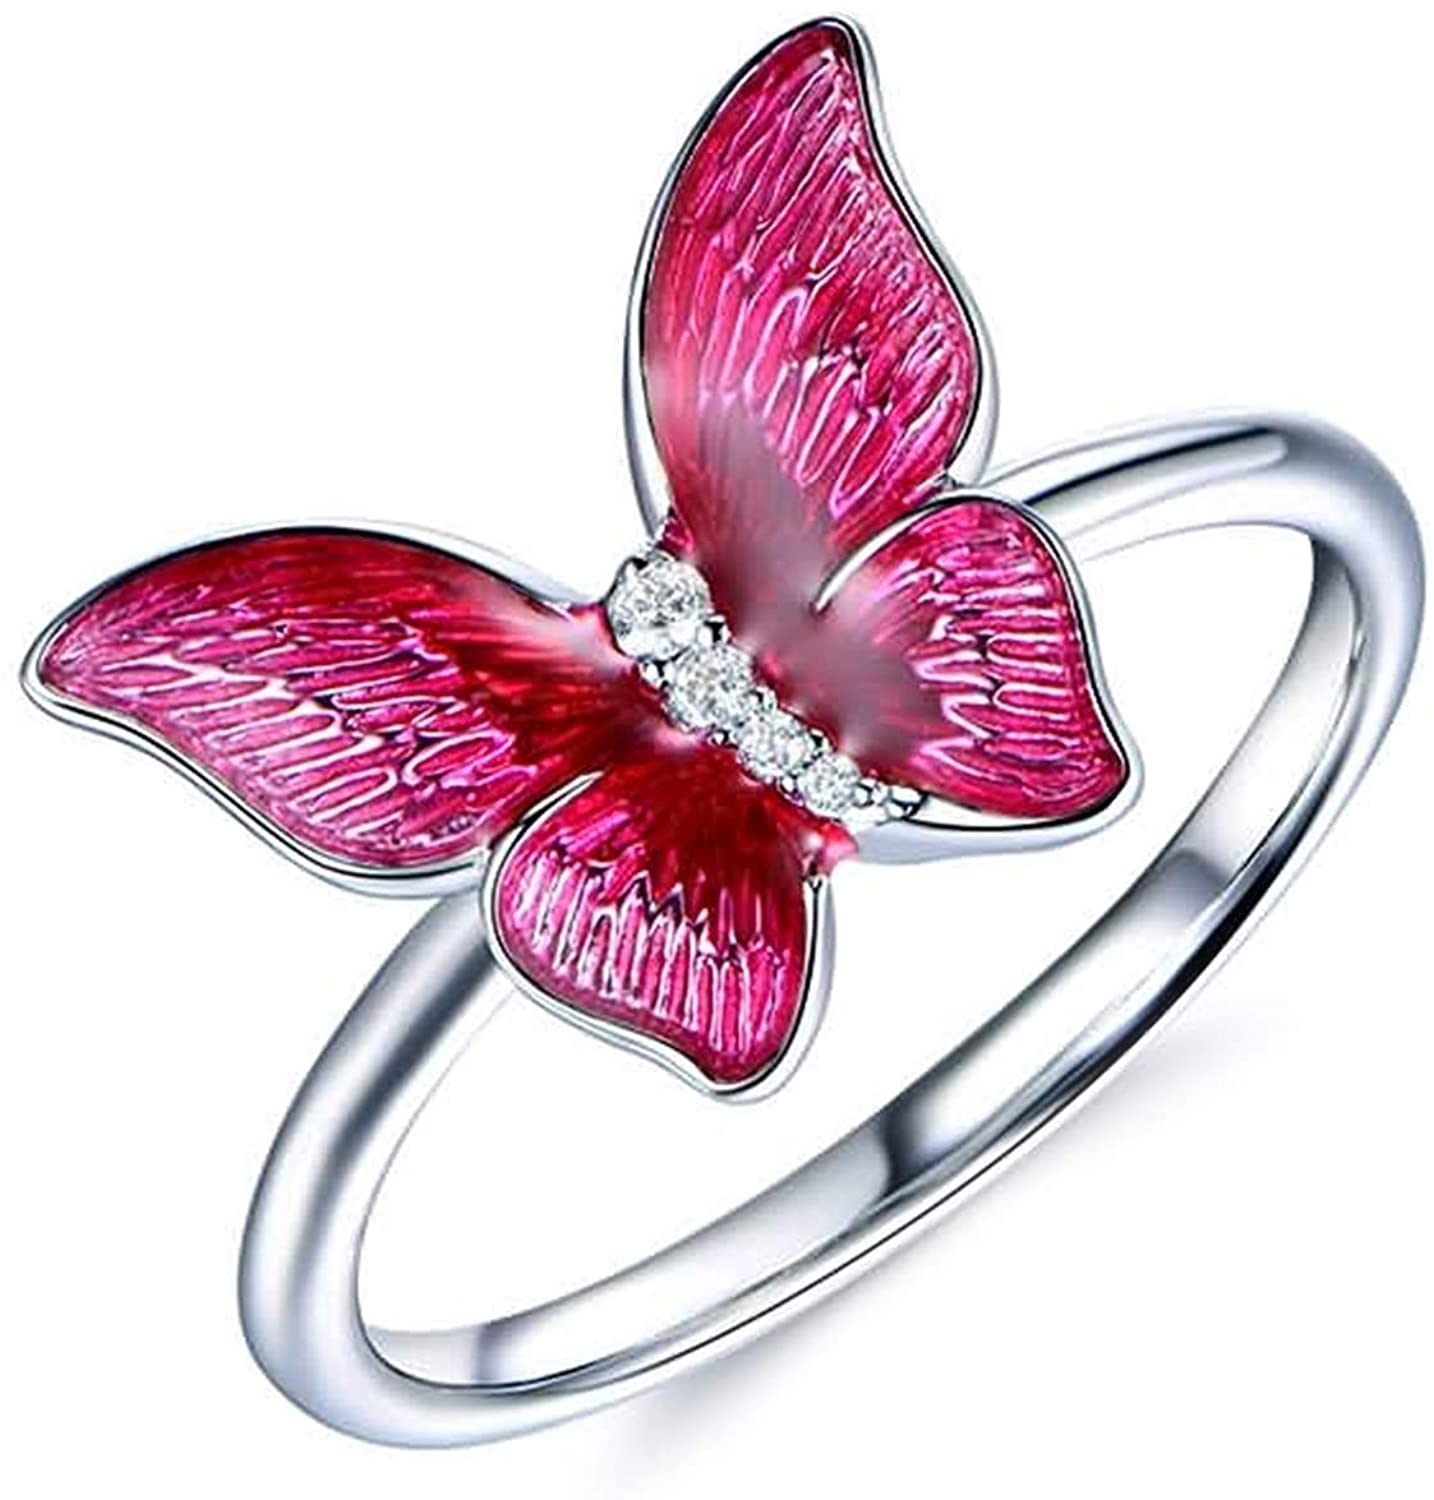 AMDXD Wedding Bands 18K White Gold, Butterfly with Diamond 0.03ct Anniversary Ring Gift for Her White Gold Size 4.5